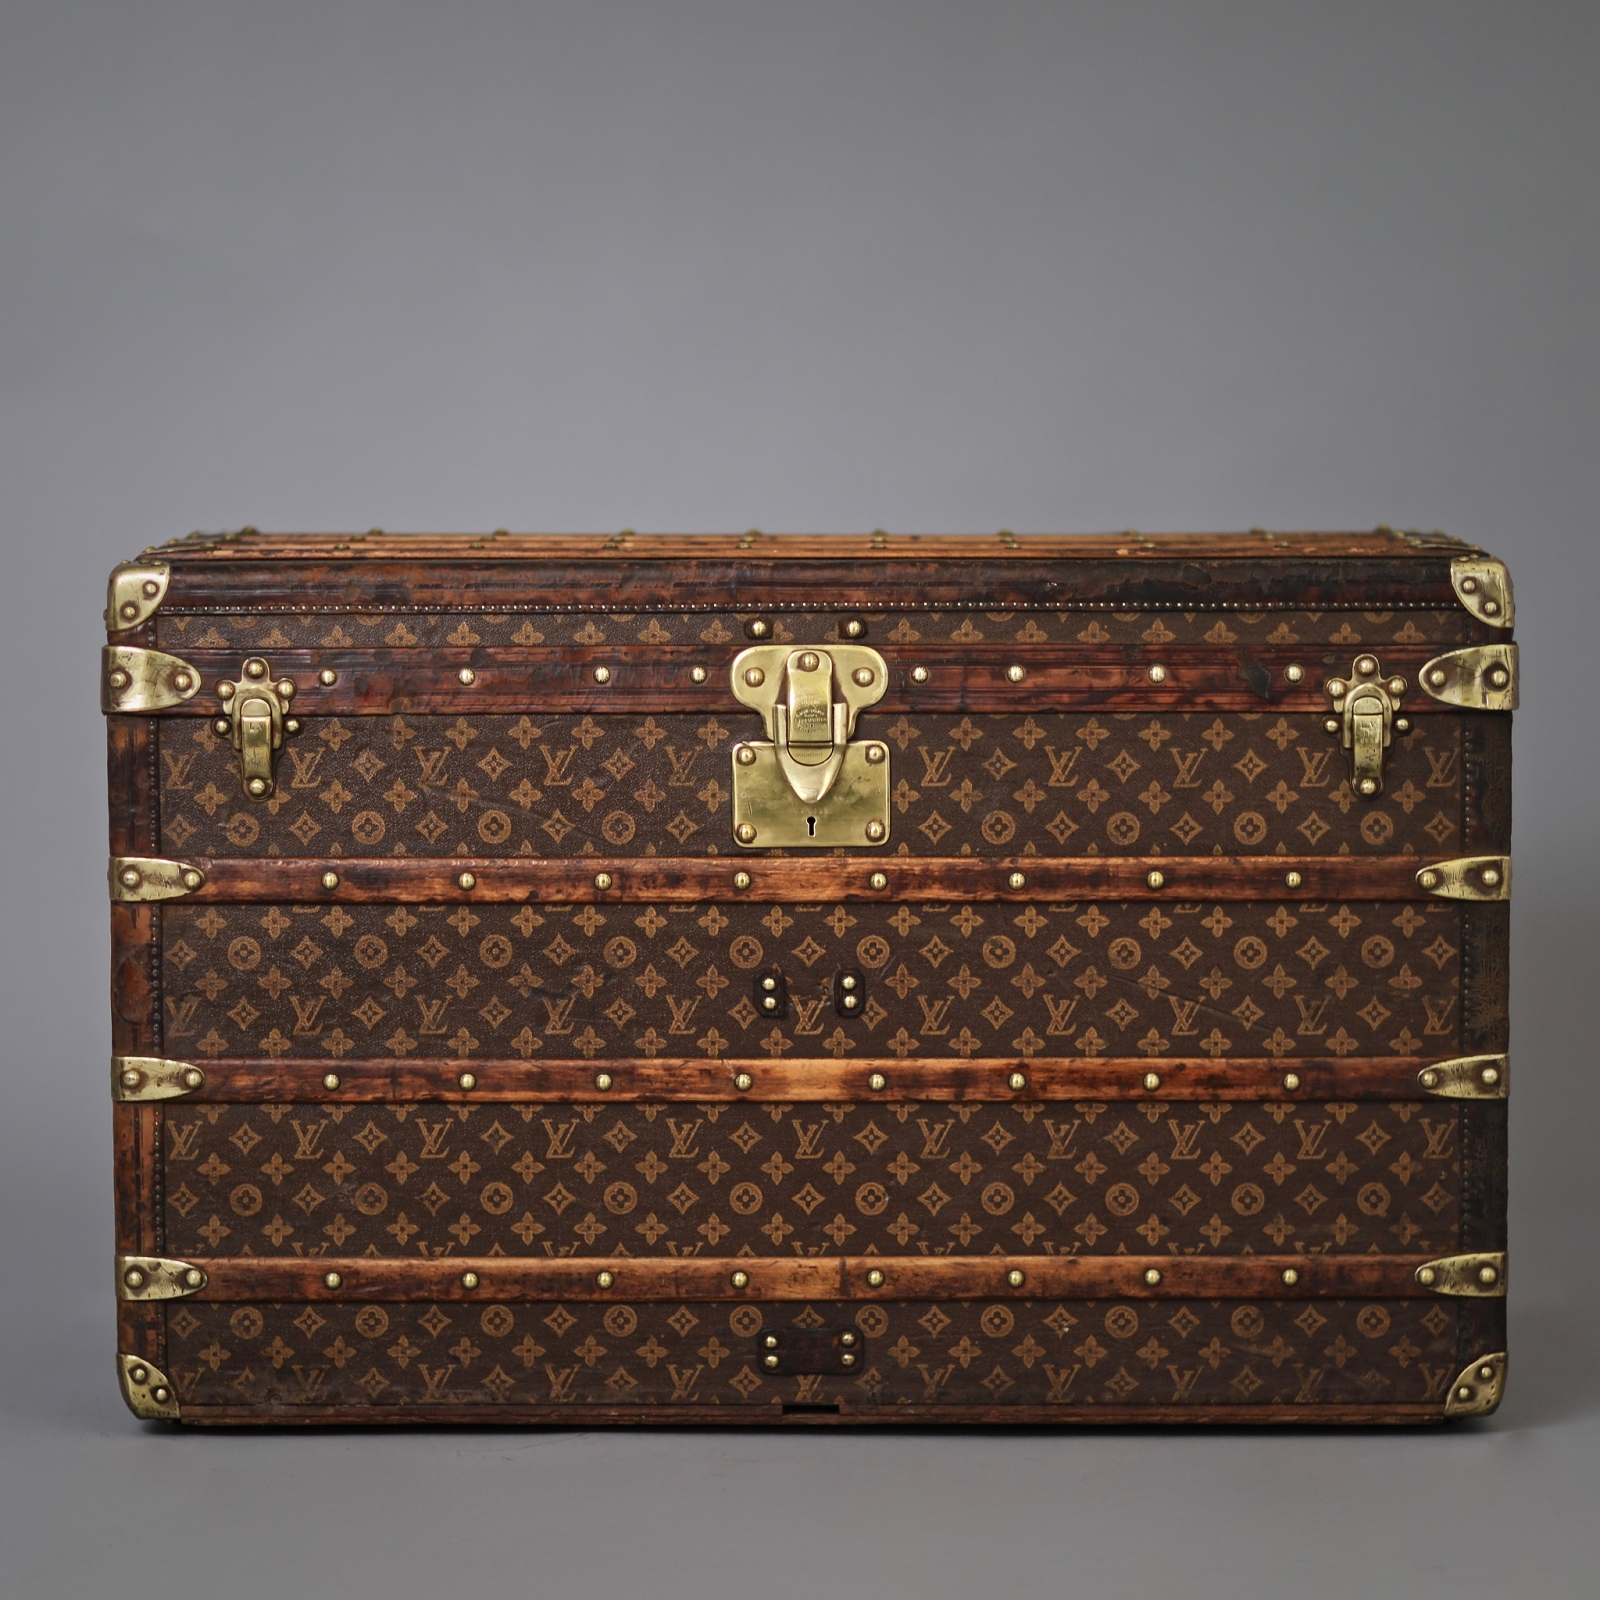 the-well-traveled-trunk-louis-vuitton-thumbnail-product-55504A